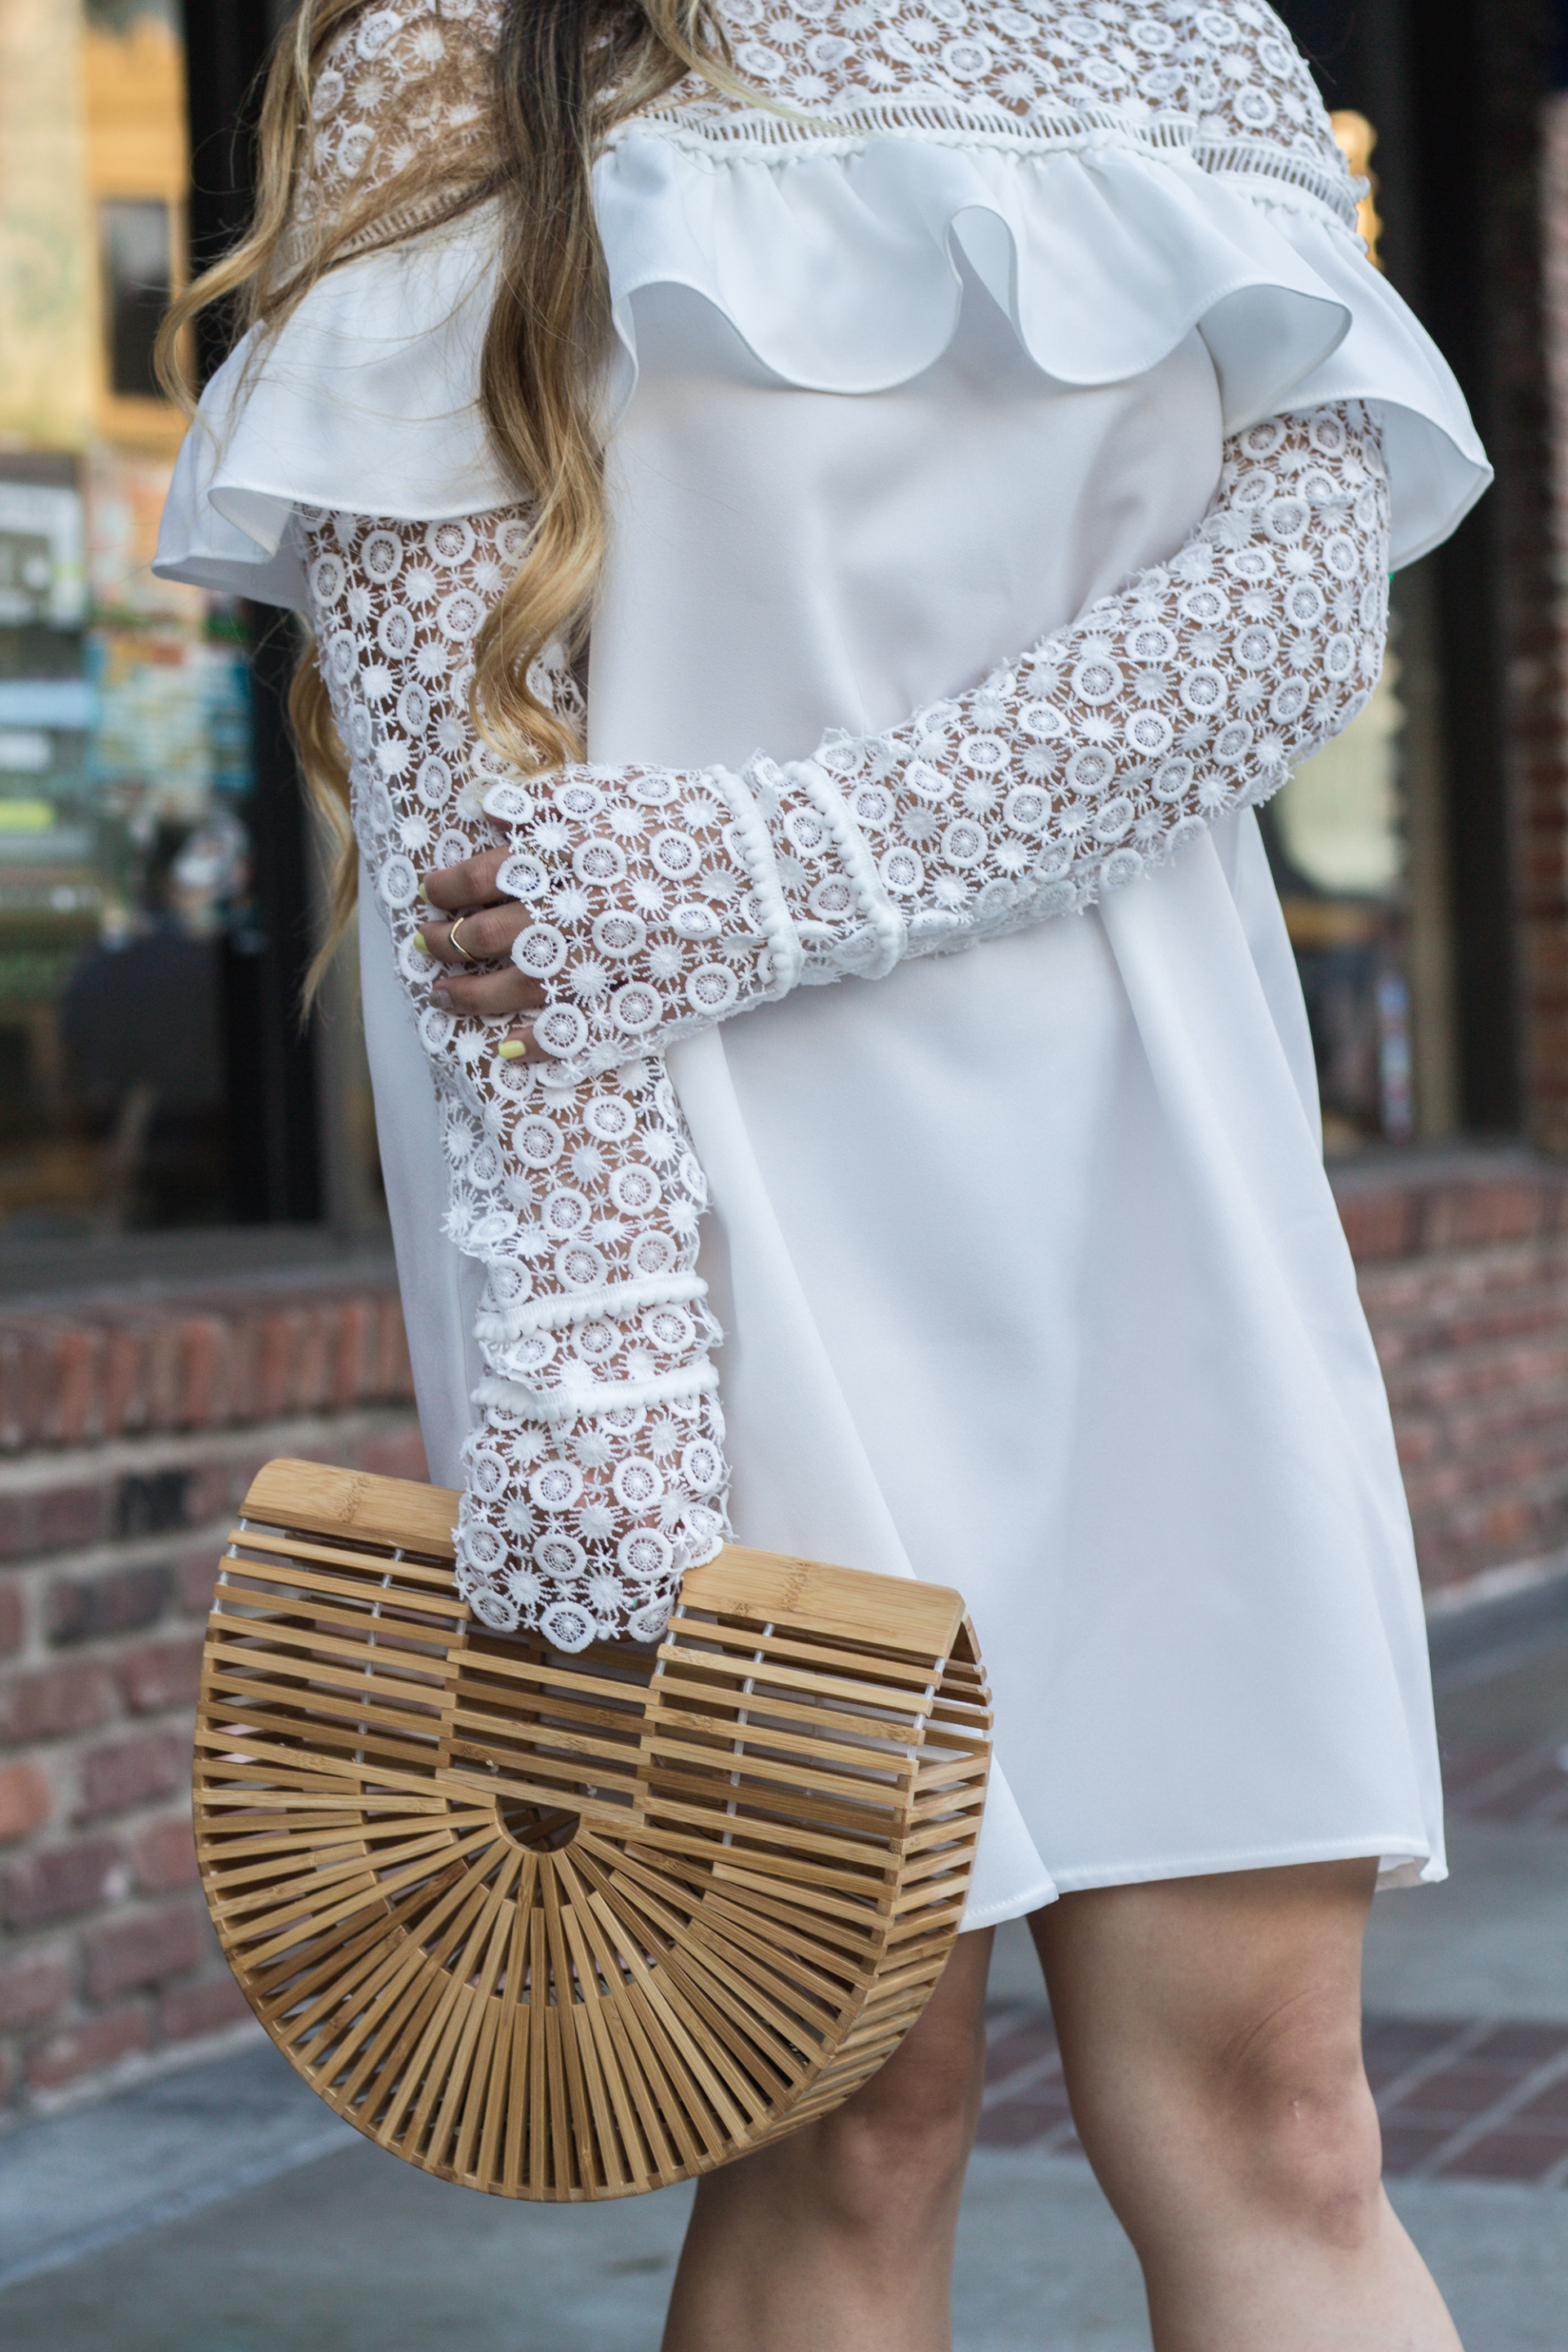 cult-gaia-ark-bamboo-bag-dupe-white-lace-dress